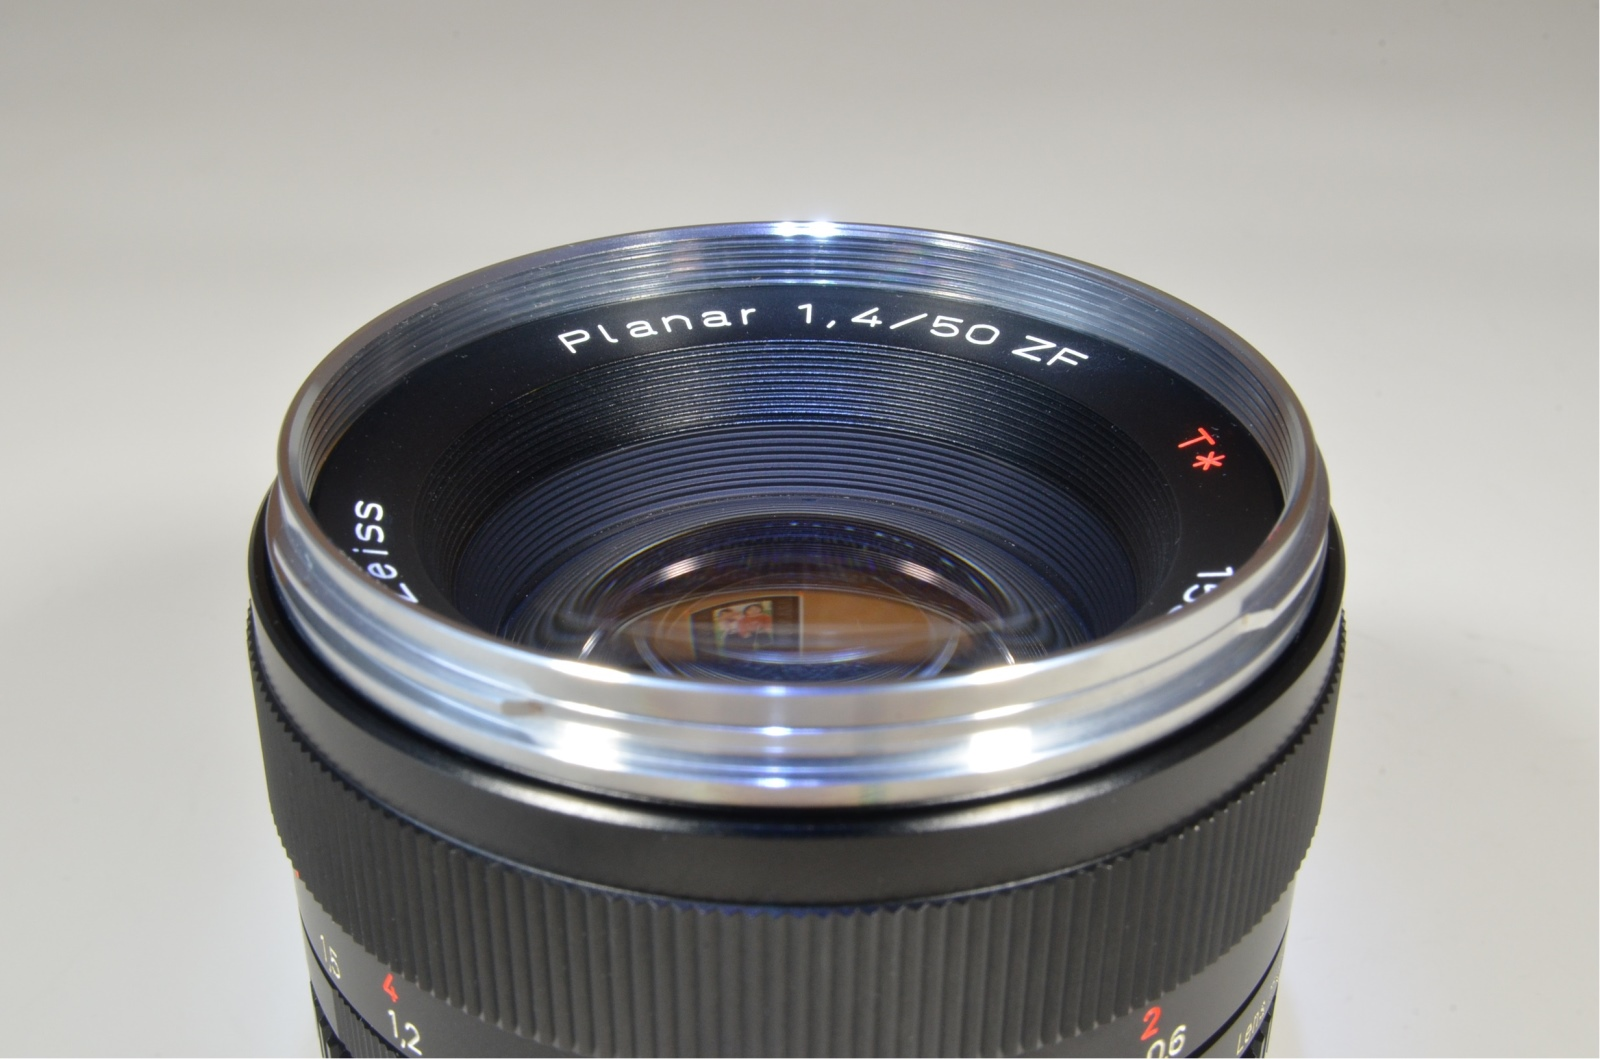 carl zeiss planar t* 50mm f1.4 zf for nikon ai-s ais